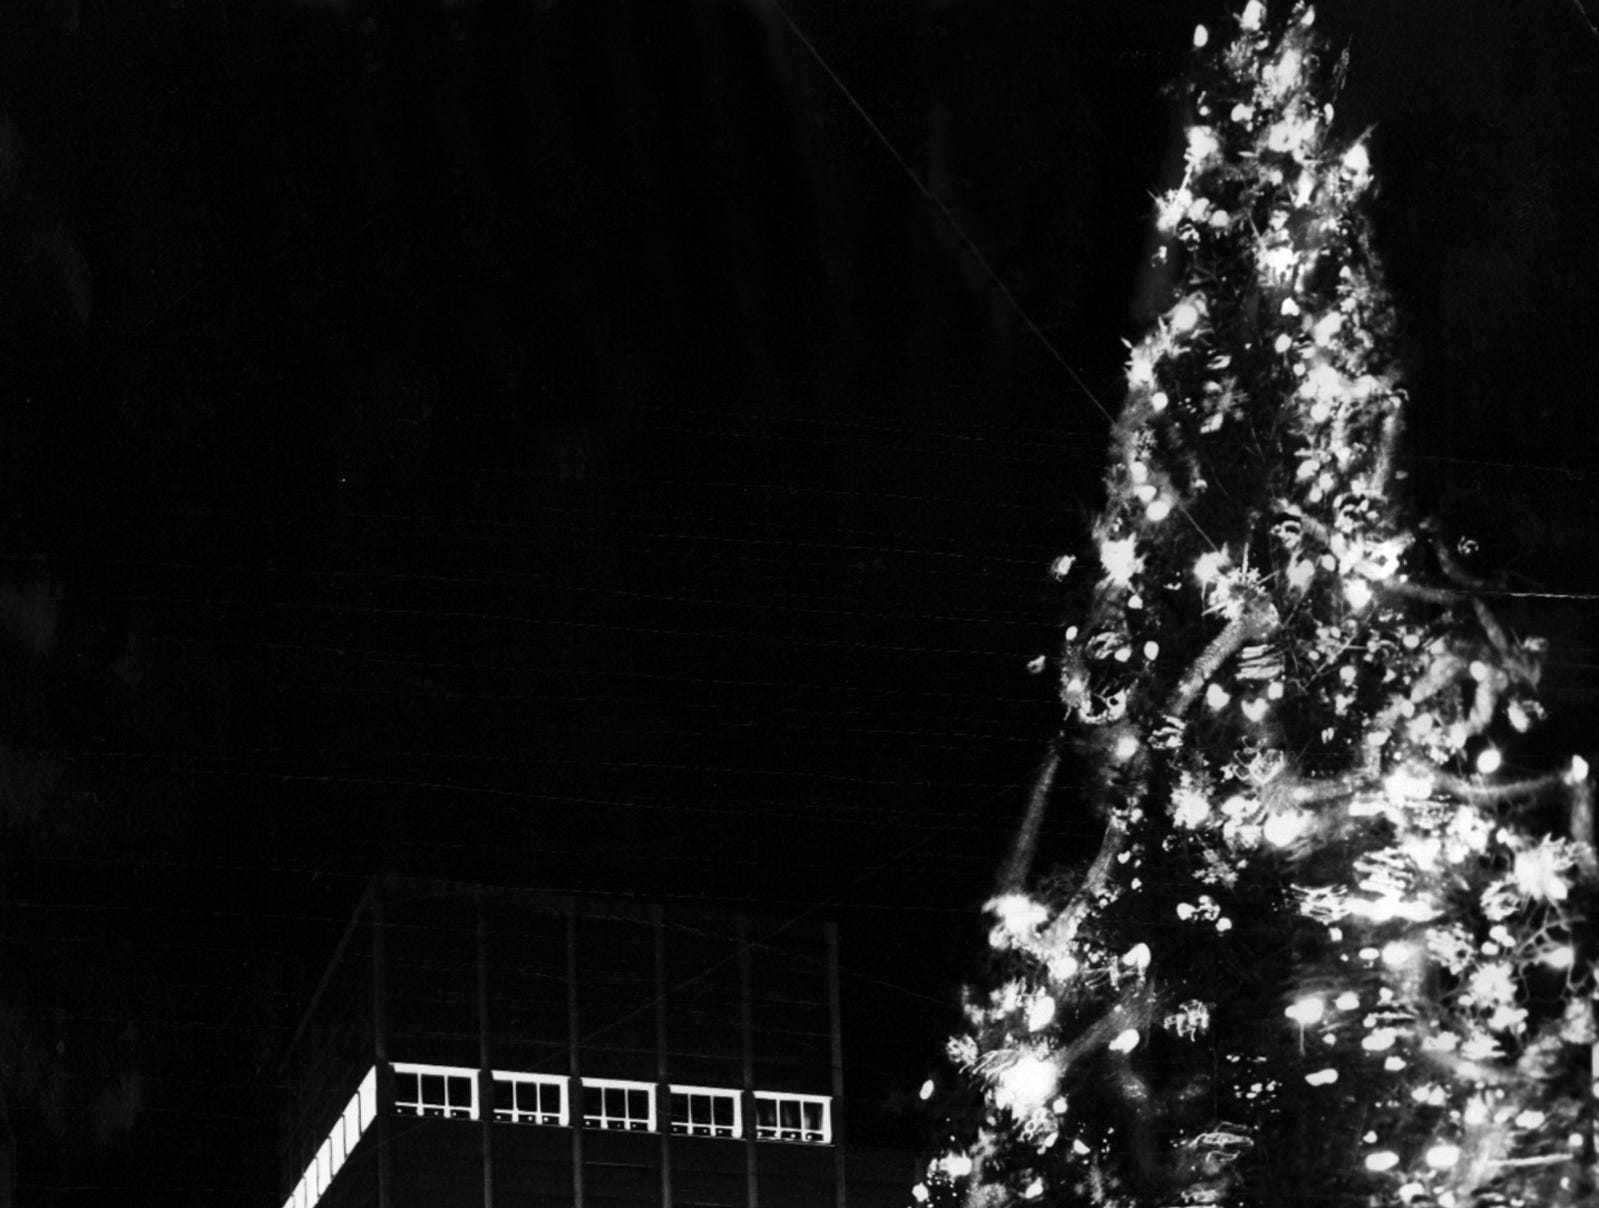 1962: Thousands of Greater Cincinnatians thronged the adjoining intersections to welcome the Christmas tree's arrival to Fountain Square. They began gathering shortly after 8 p.m. spilling out of stores, off buses, from automobiles.